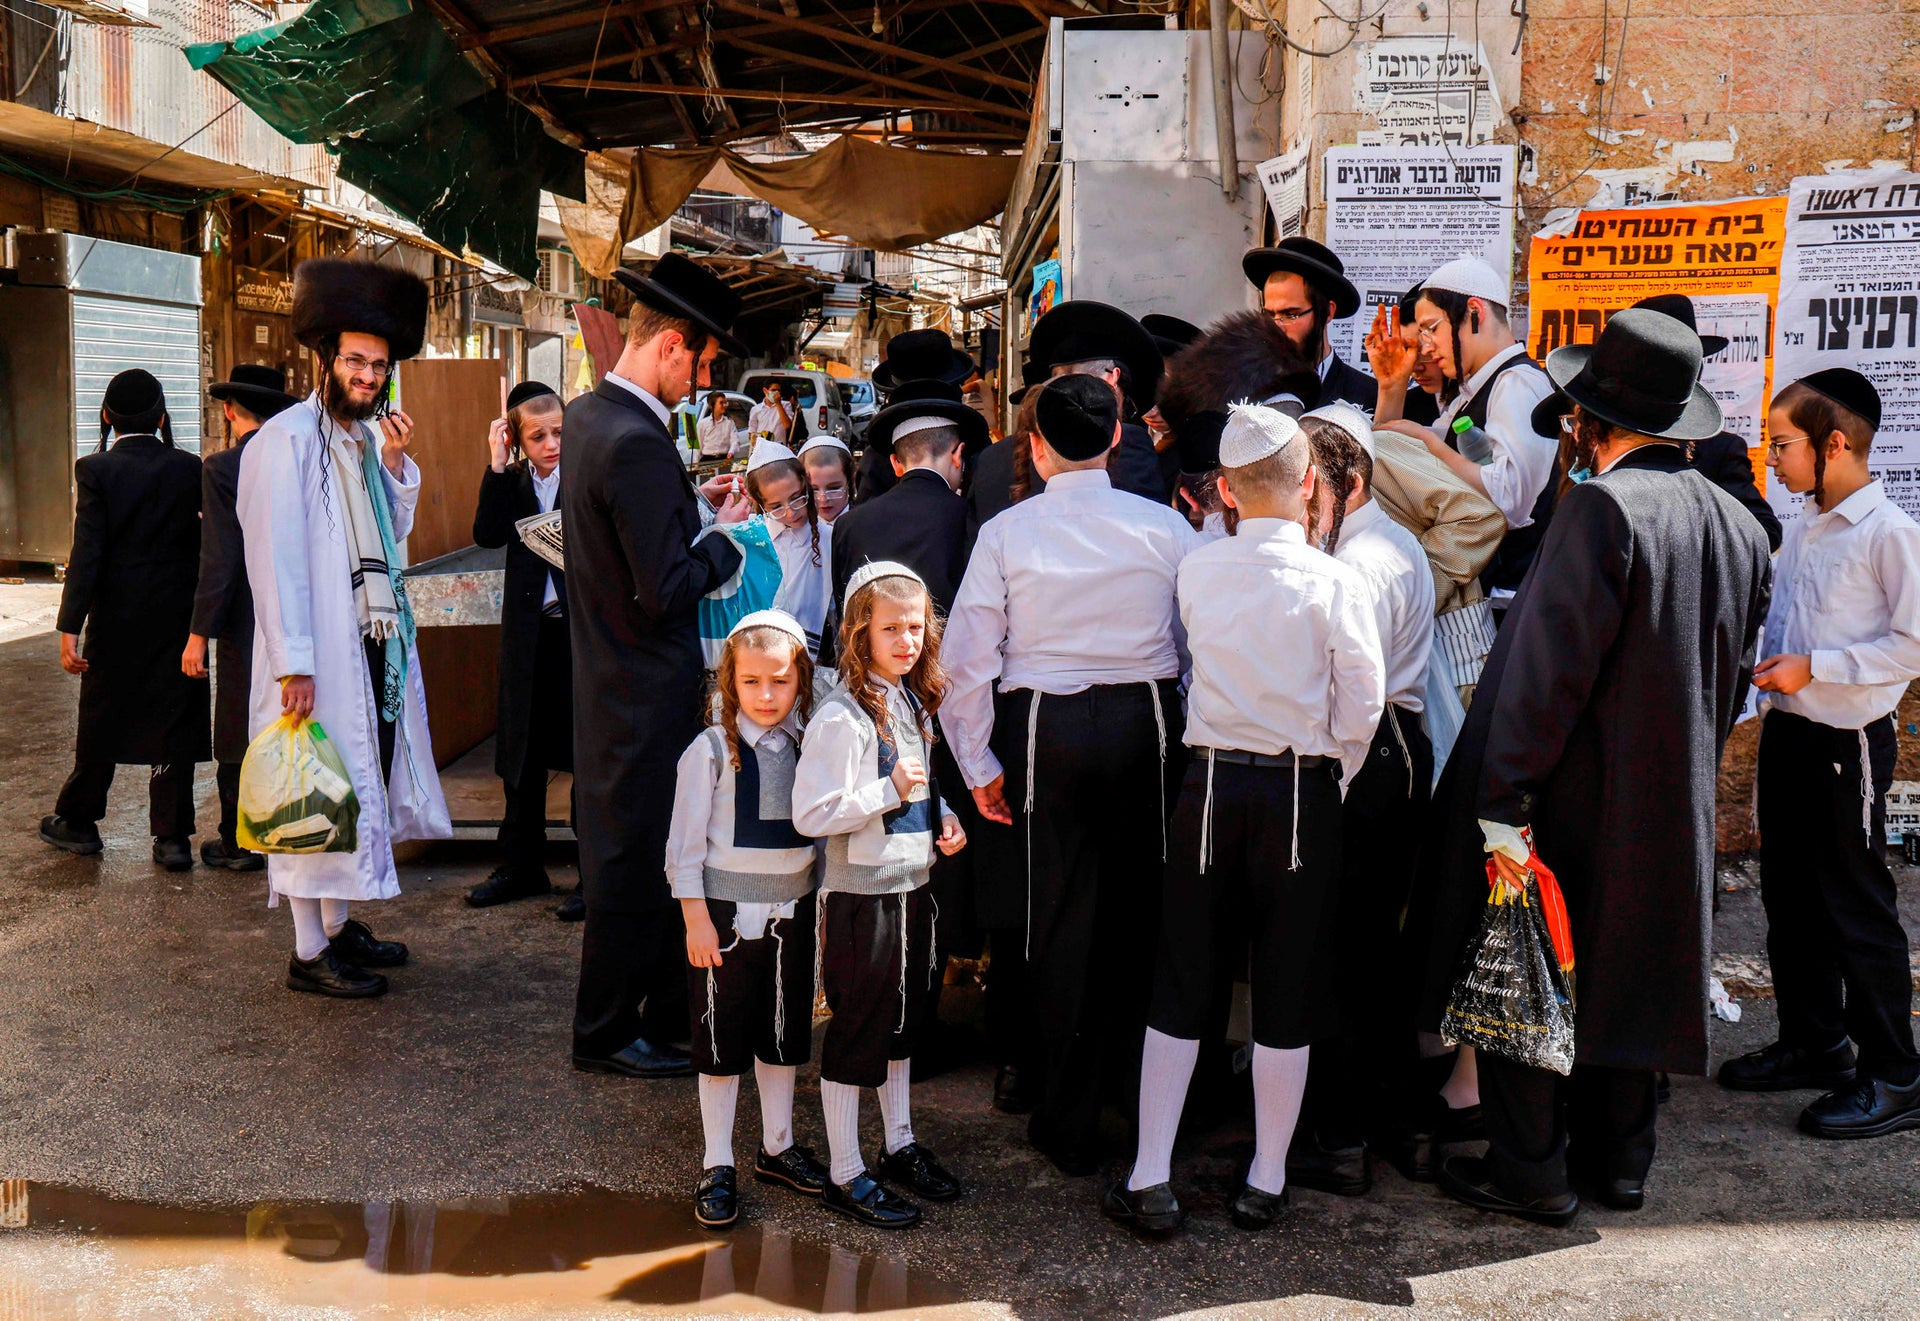 Ultra-Orthodox men and boys stand along a street corner in Mea Shearim, Jerusalem a few hours before the start of Yom Kippur, September 27, 2020.